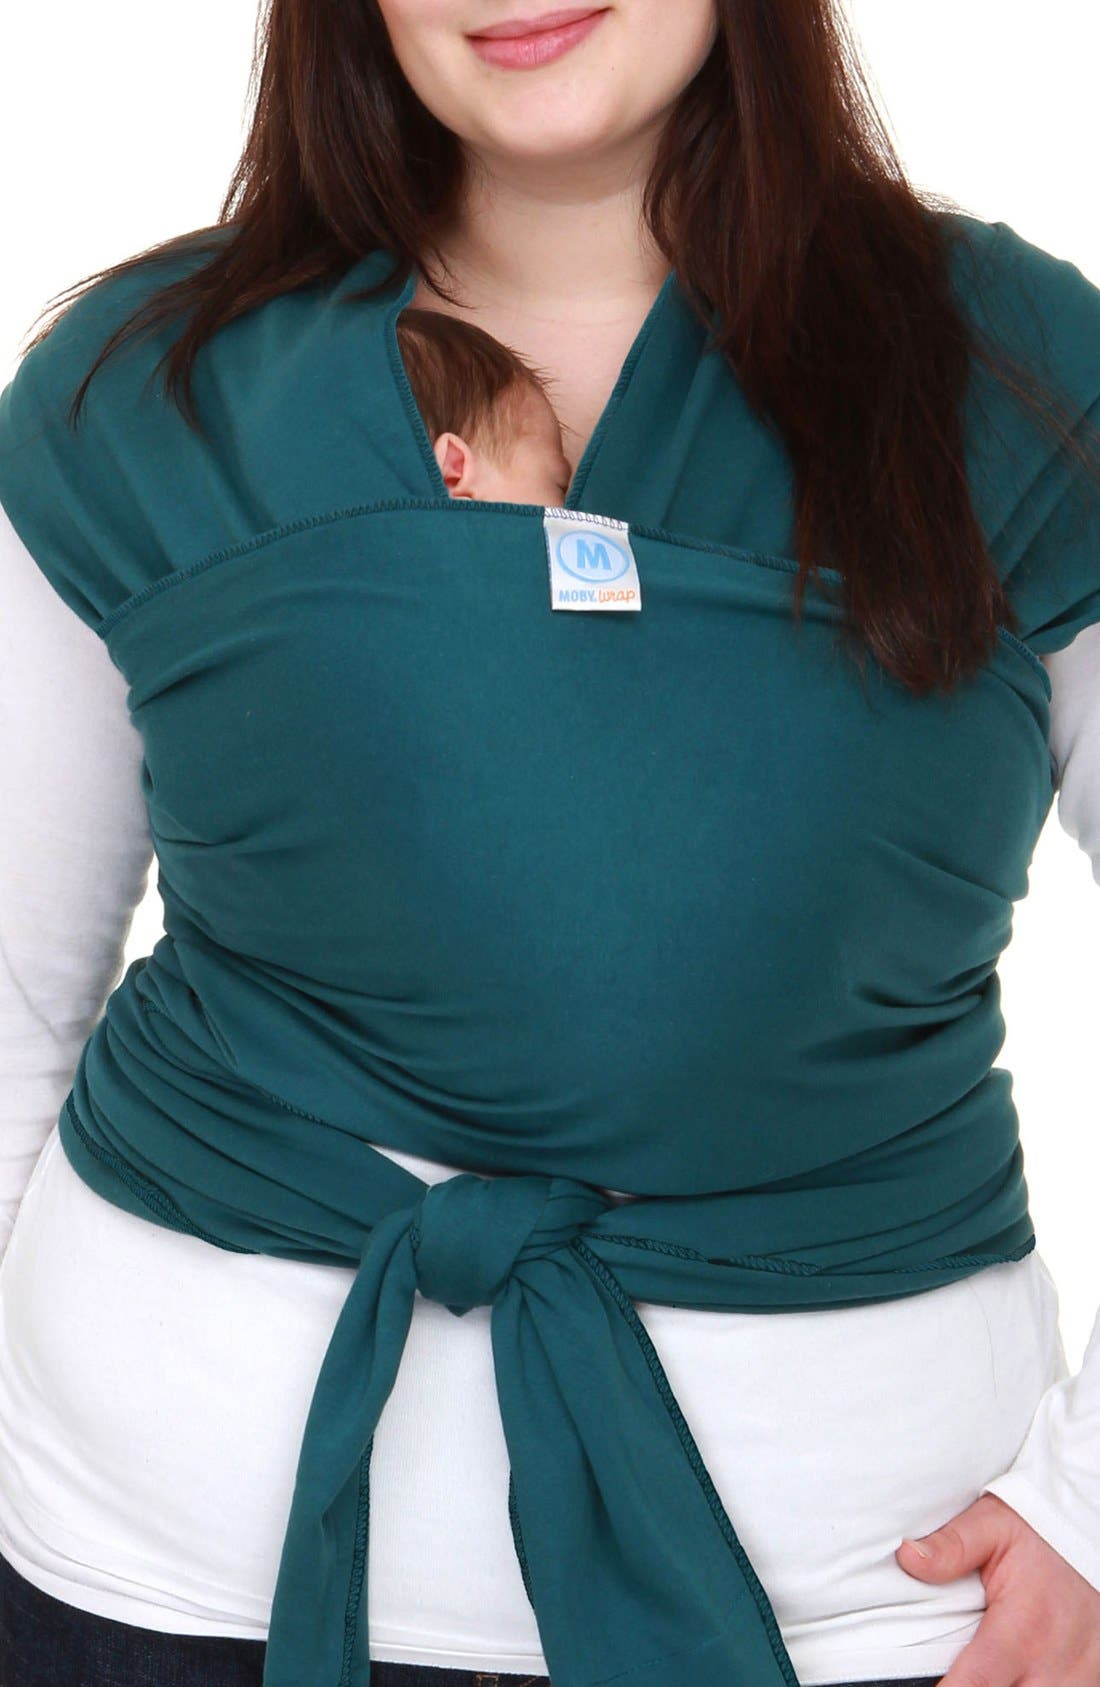 Main Image - Moby Wrap 'Moderns' Baby Carrier